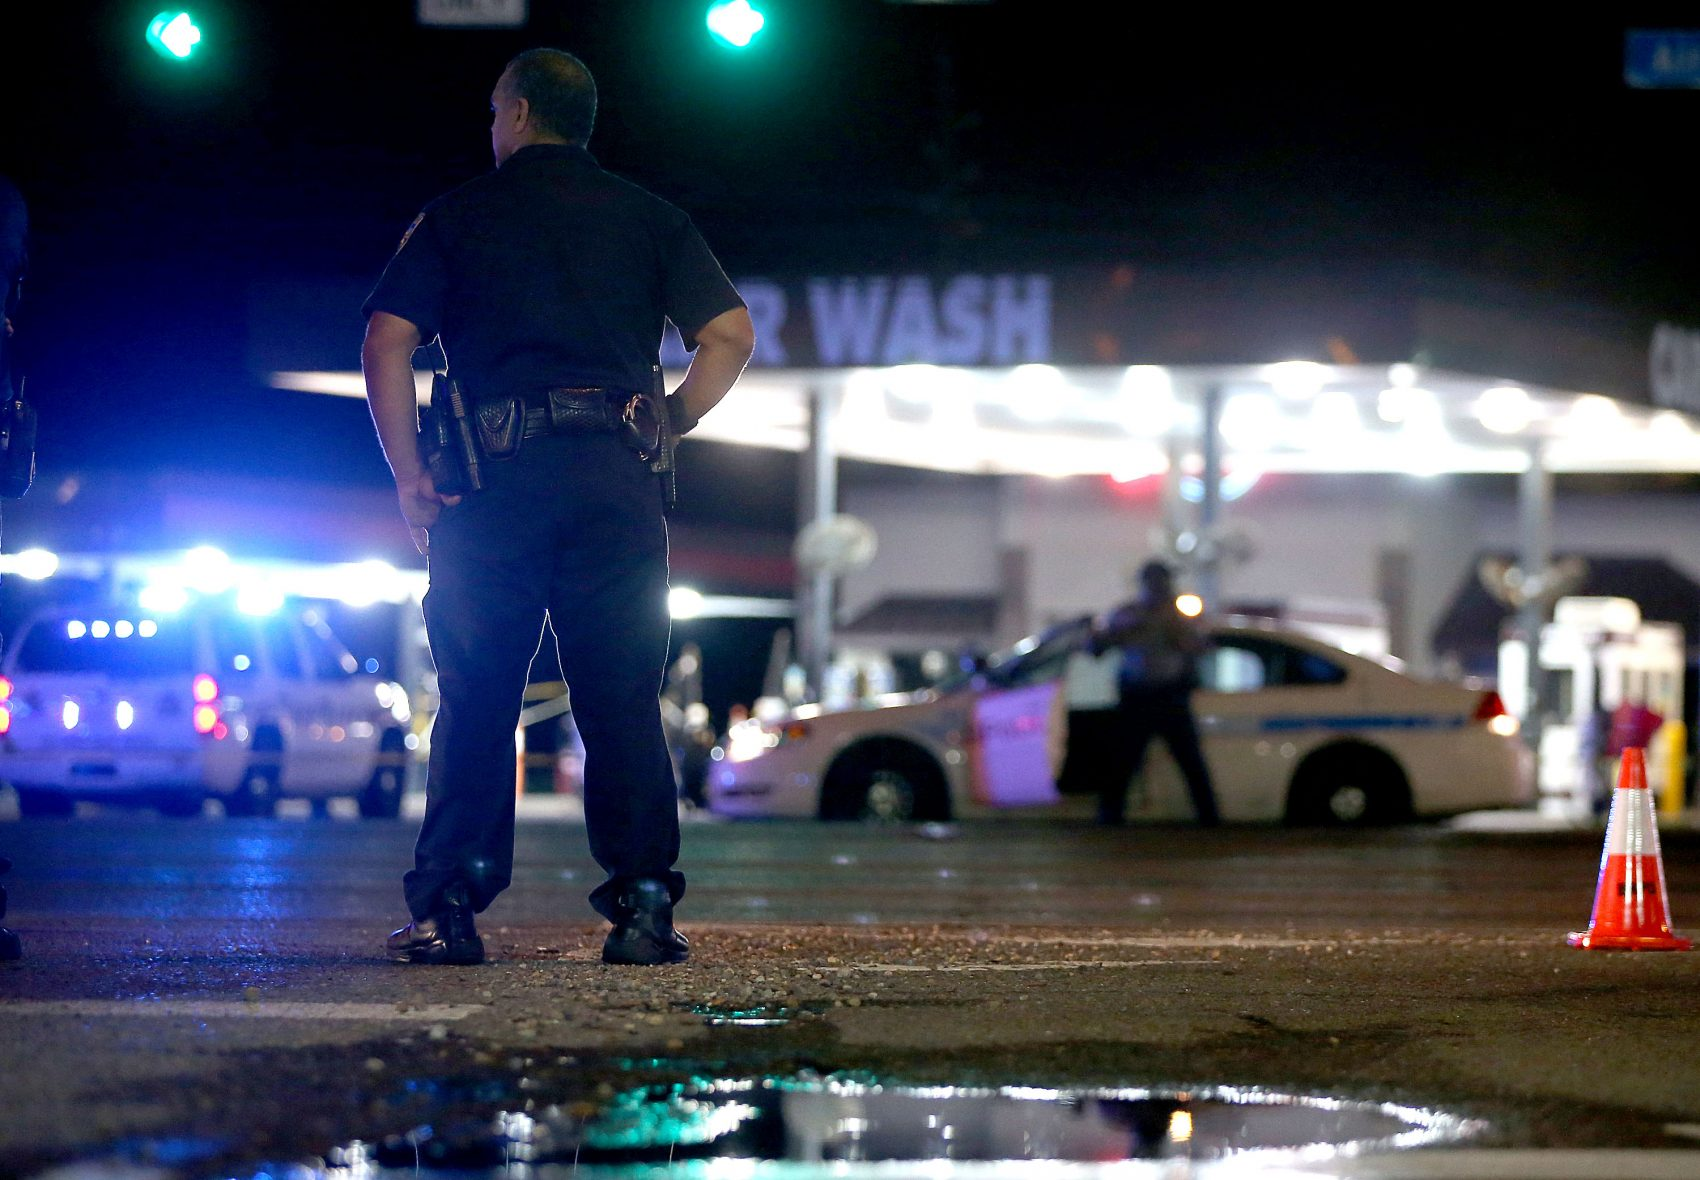 Police officers stand near the scene of where three police officers were killed on July 17, 2016 in Baton Rouge, Louisiana. The suspect, identified as Gavin Long of Kansas City, is dead after killing three police officers and injuring three more. (Sean Gardner/Getty Images)